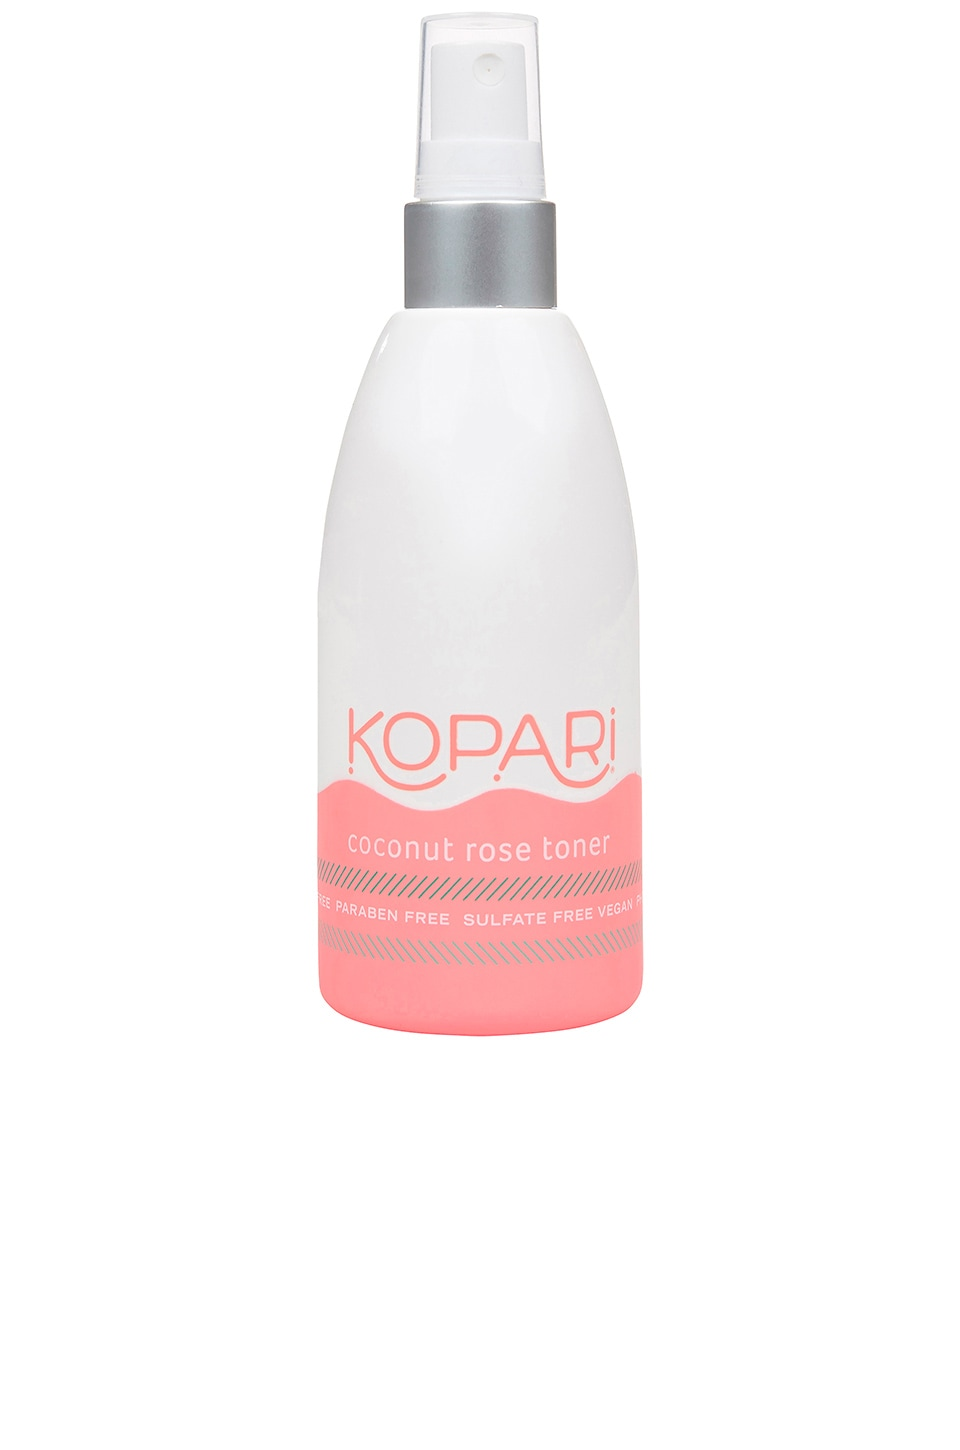 Kopari Coconut Rose Toner